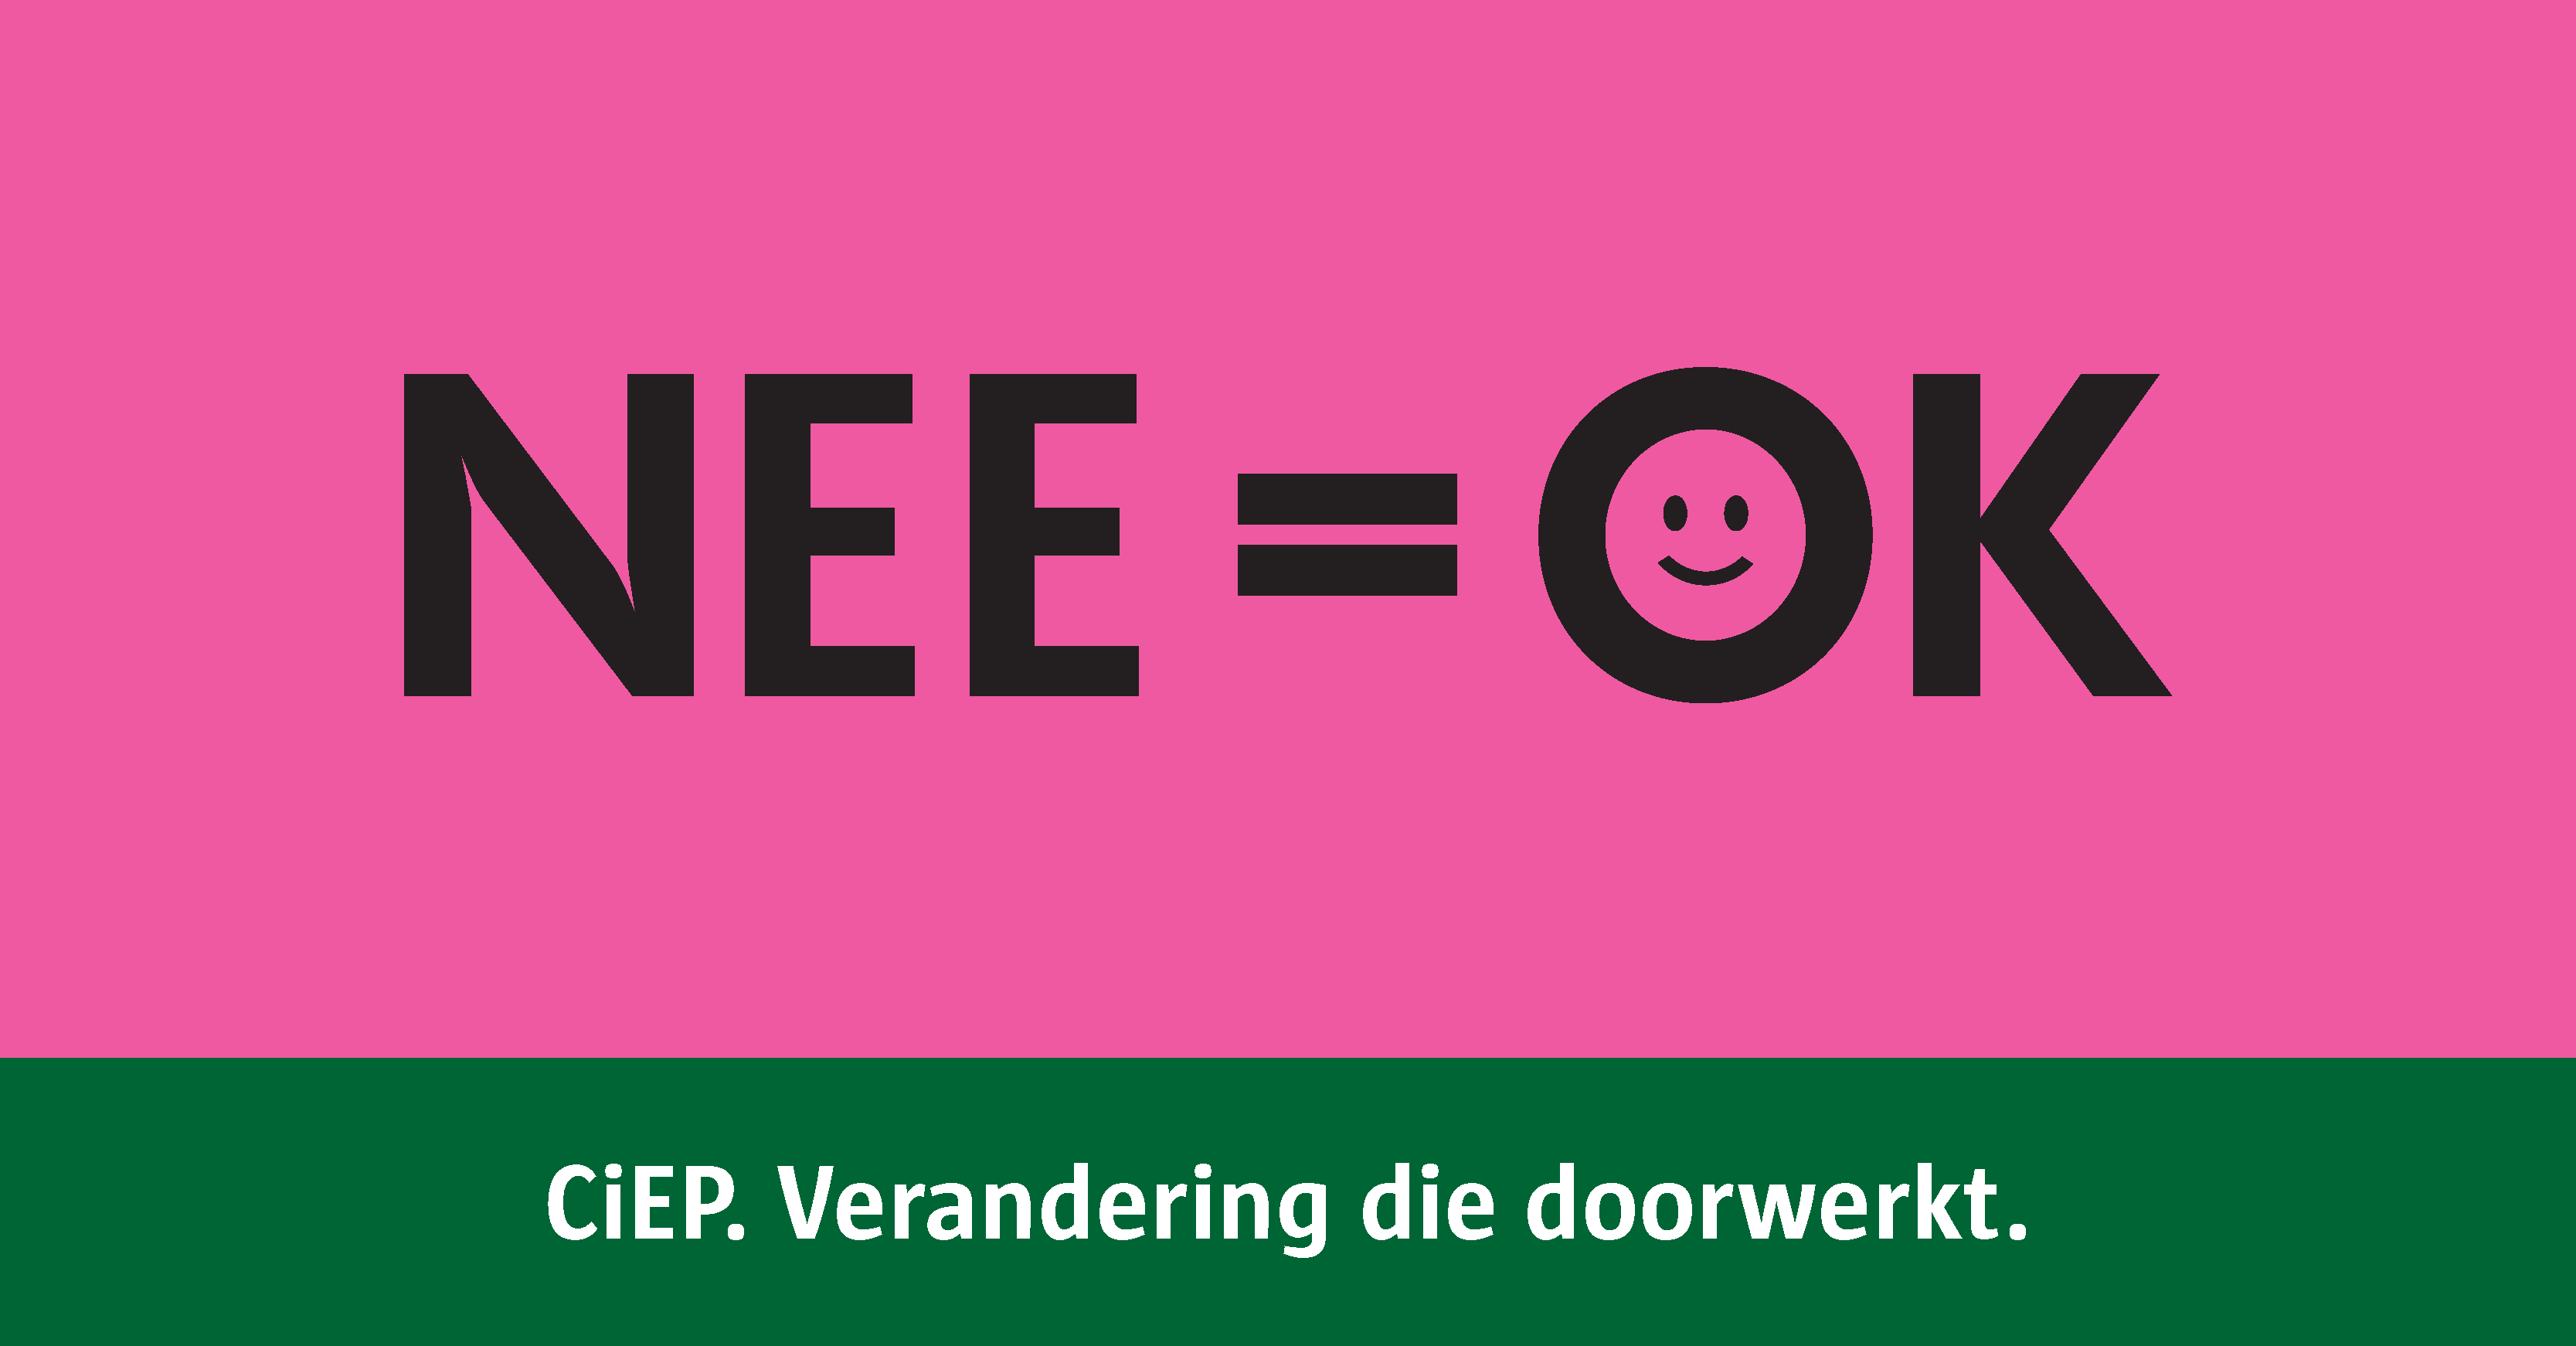 nee is ok